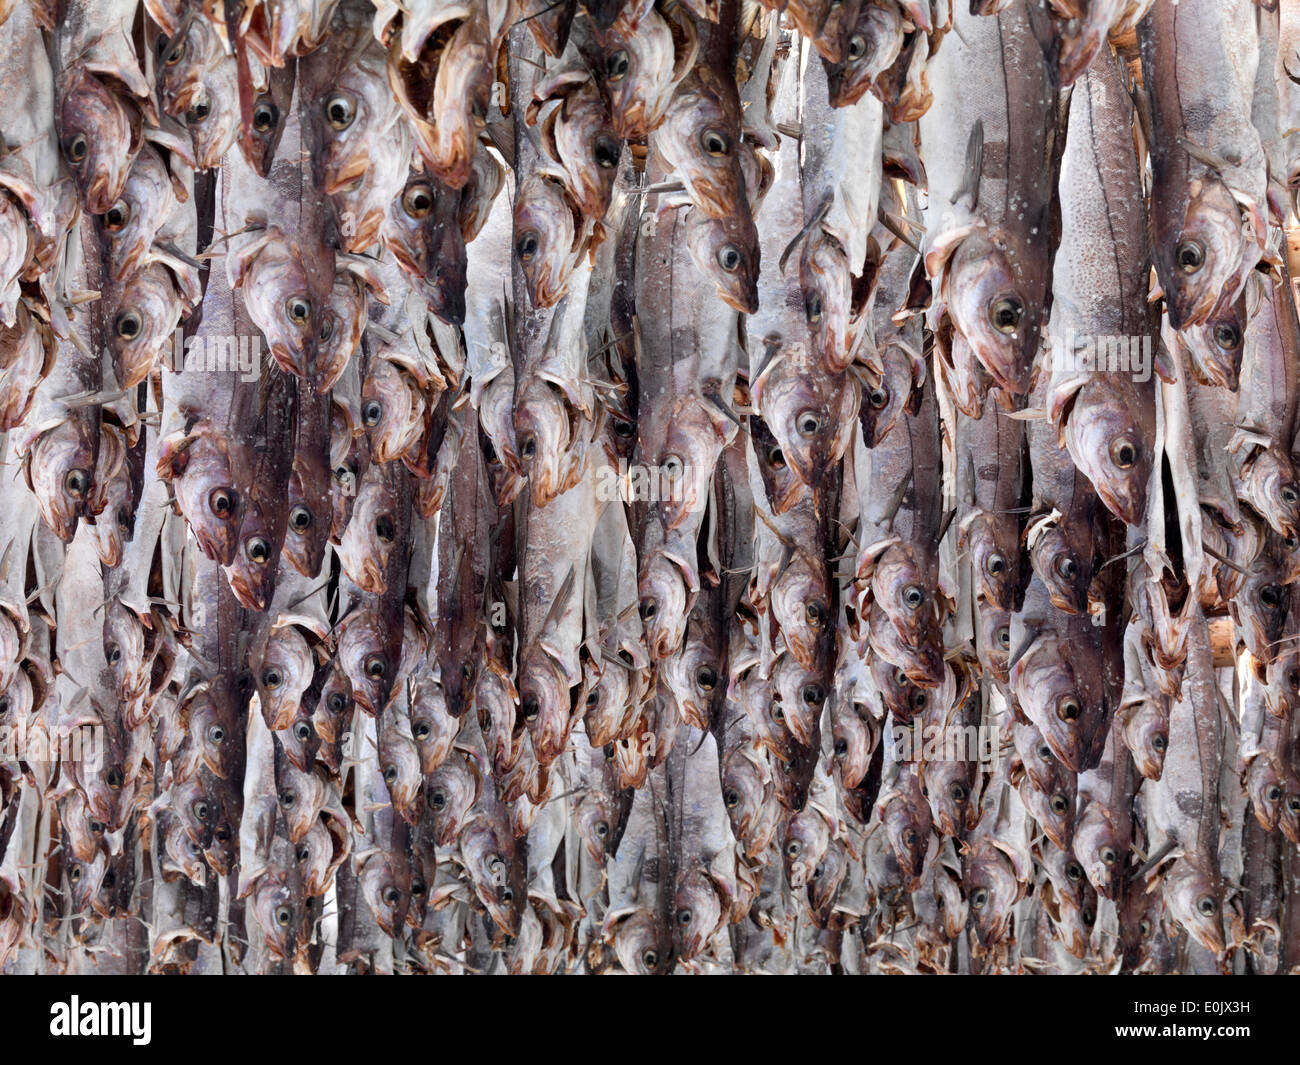 Pollack being dried with heads as stockfish, Lofoten, Norway (Pollachius pollachius) - Stock Image